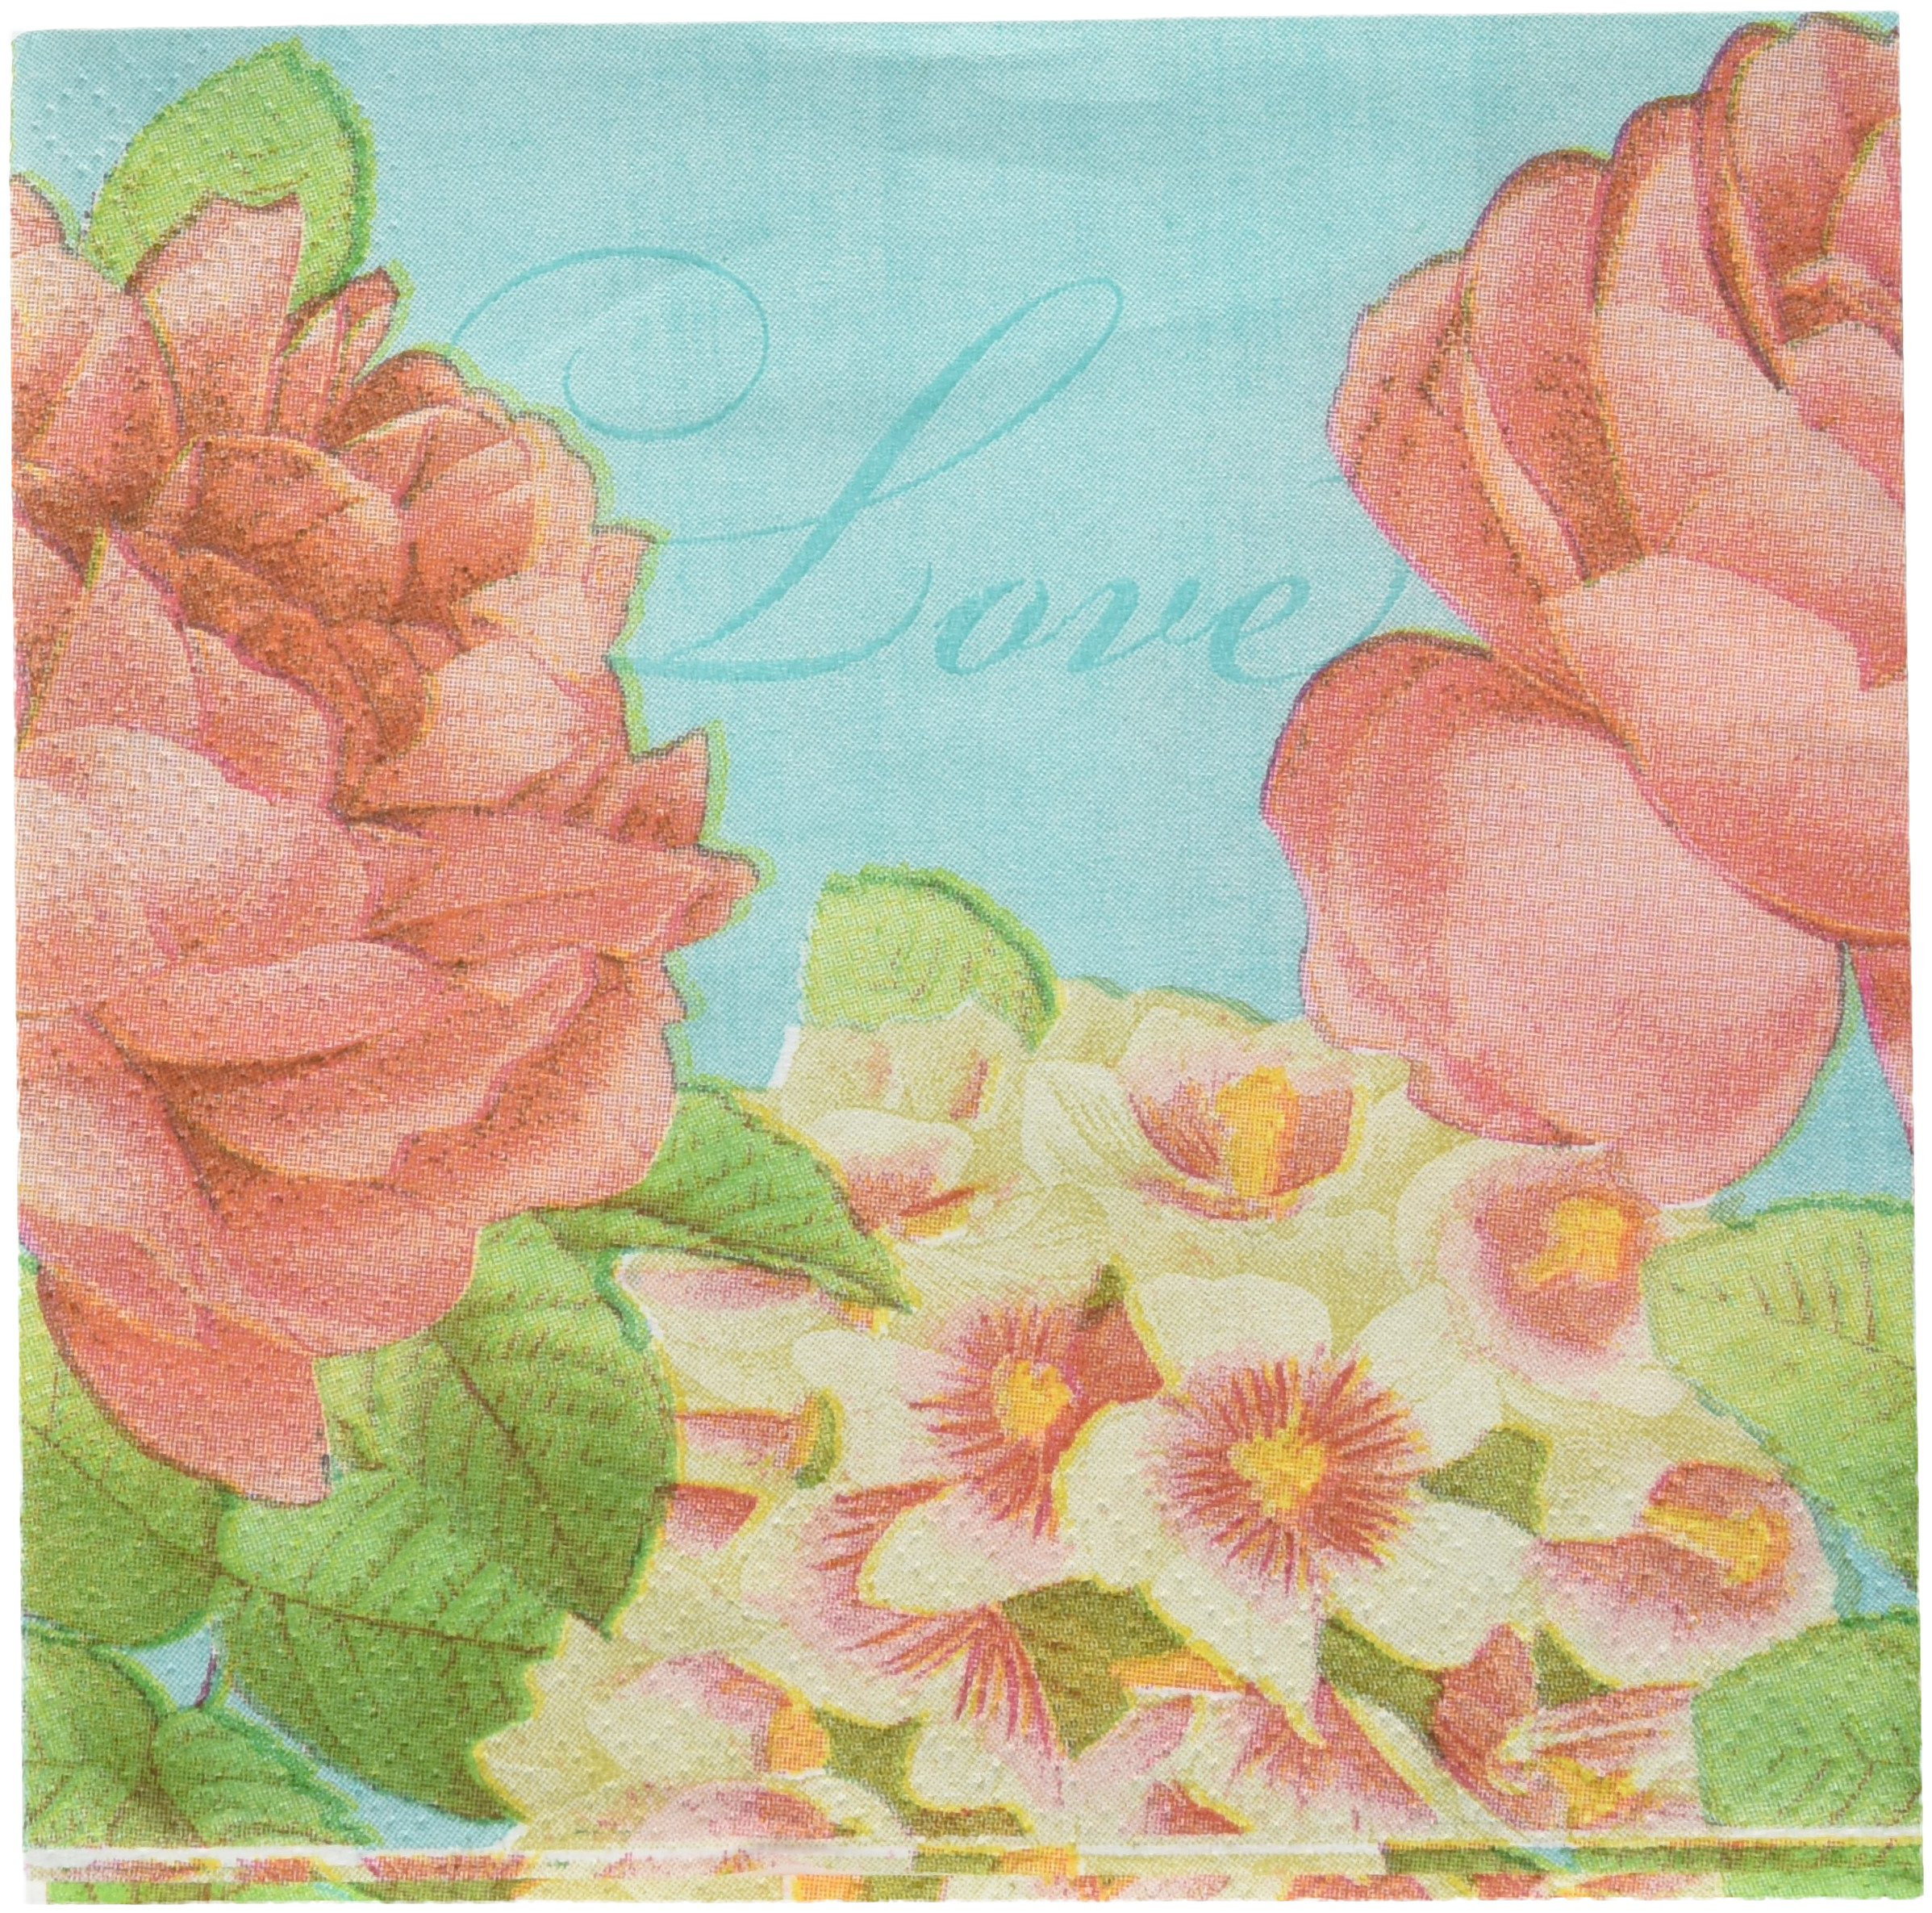 Amscan Blissful Blooms Beverage Napkin Floral Garden 5'' x 5'' Pack 36 Childrens Party (432 Piece)